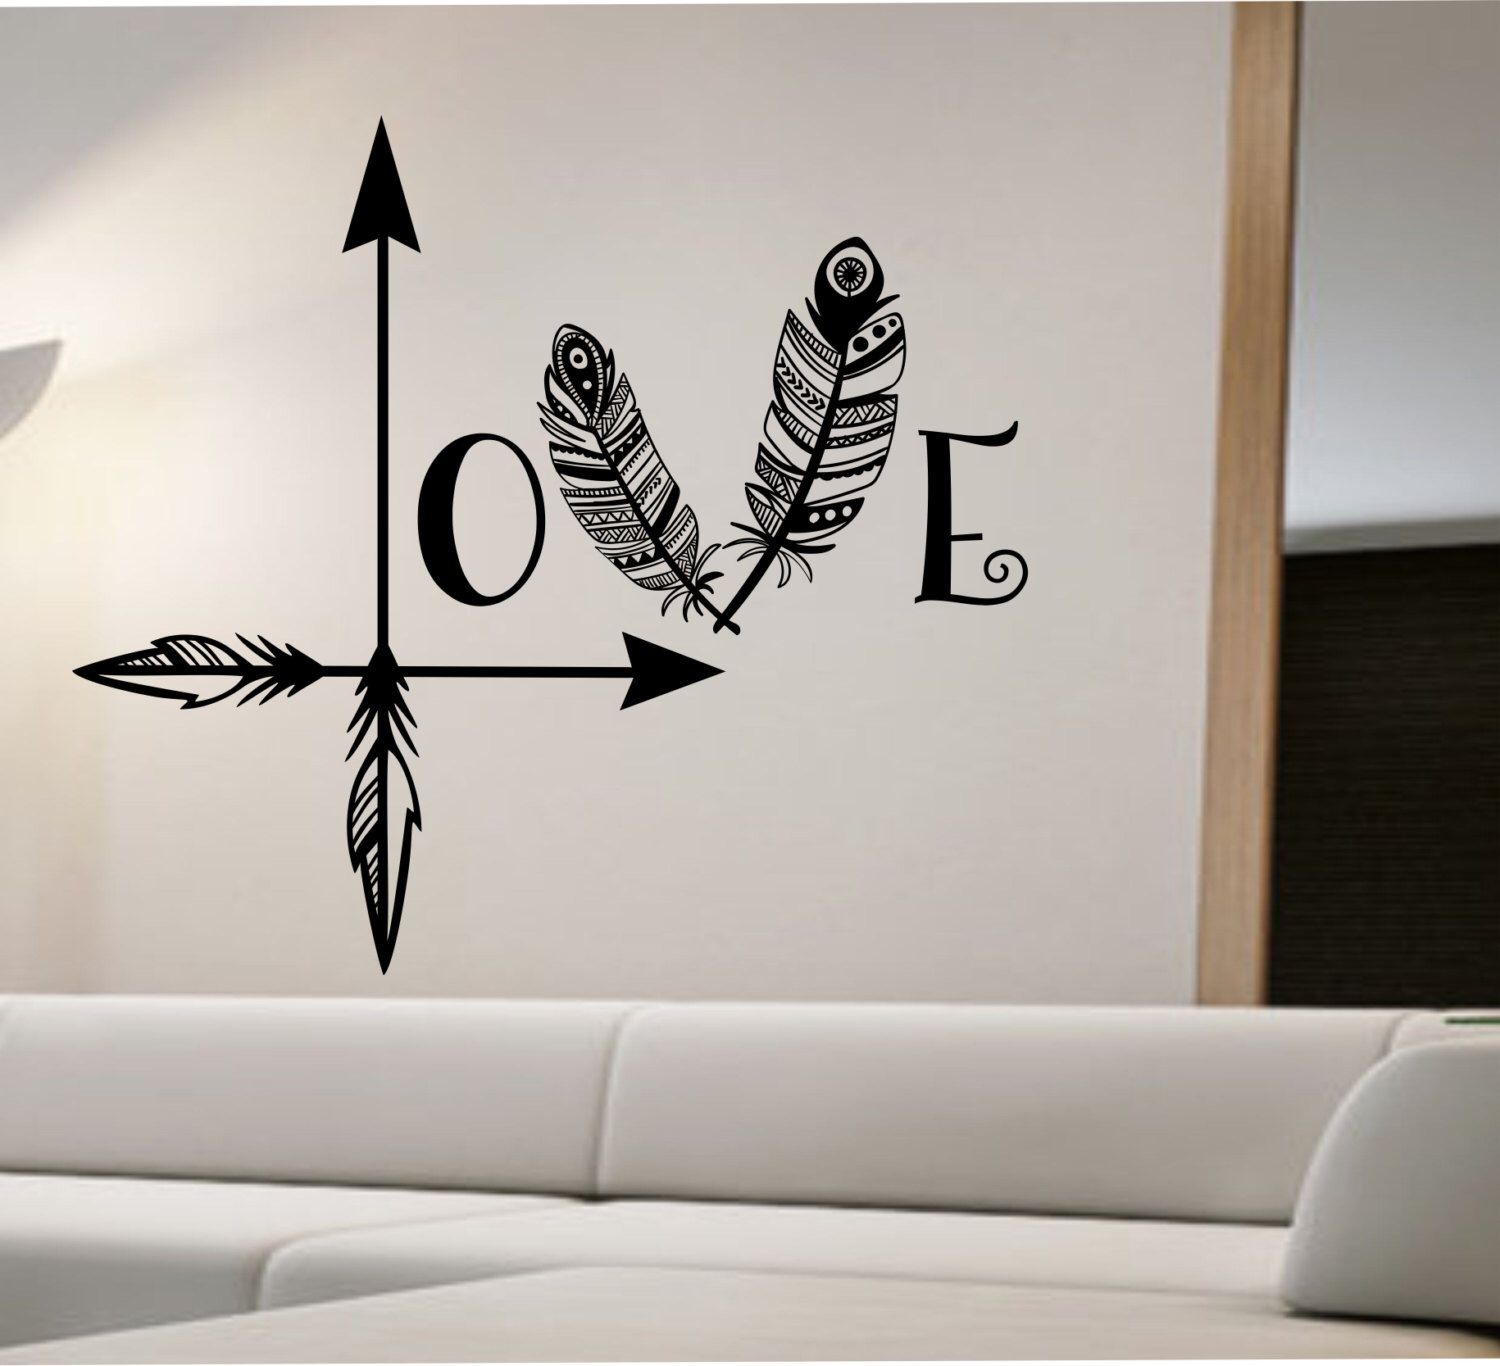 Vinyl Wall Decal Arrow Feather Love Wall Decal Namaste Vinyl Sticker Art